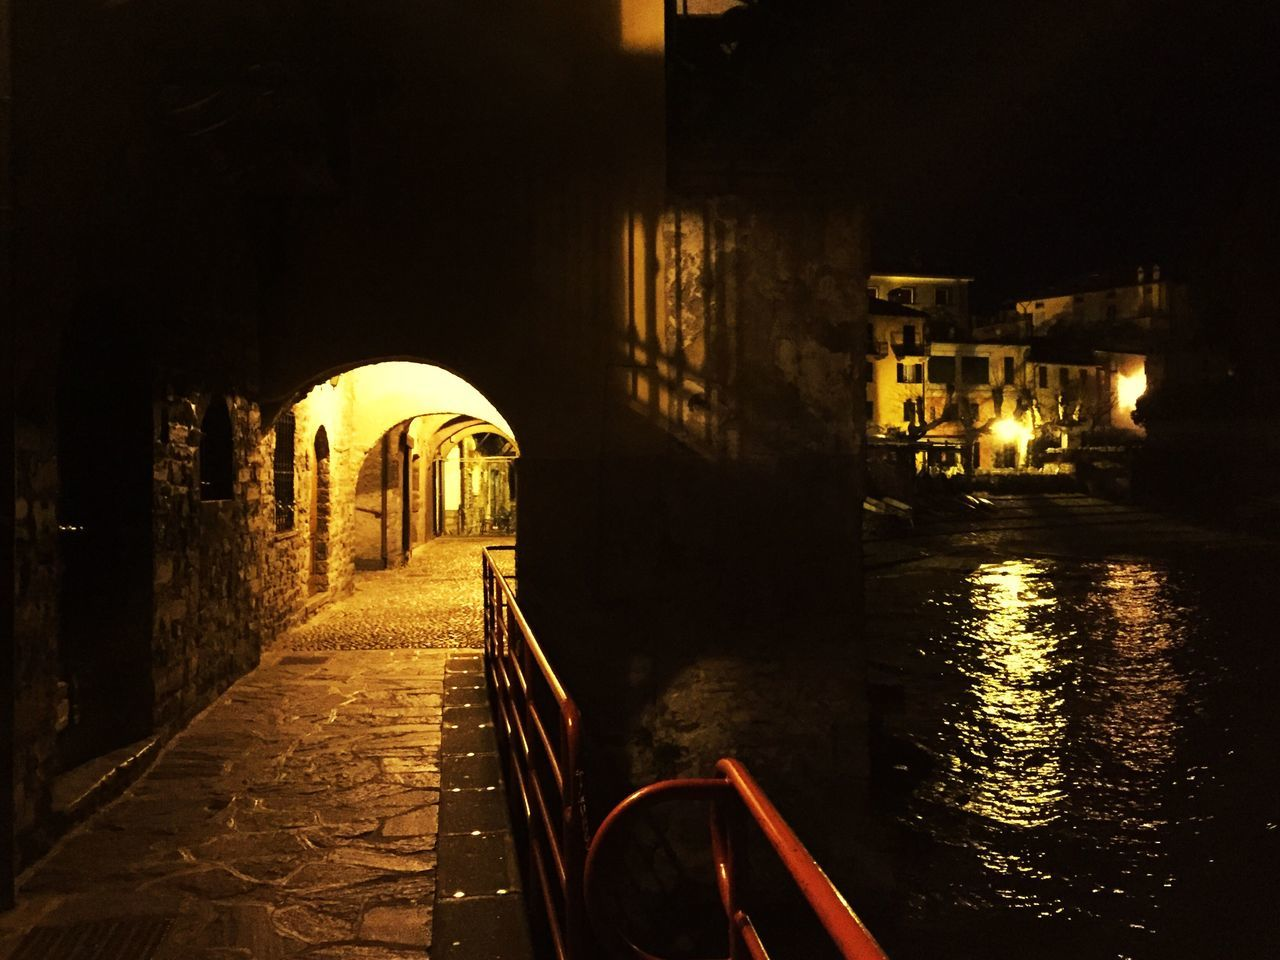 Architecture Built Structure Transportation The Way Forward Arch Illuminated Night No People Building Exterior Outdoors Tranquil Scene Scenics Bridge - Man Made Structure Lakecomo Waterfront Panorama Tranquility Lake View Landscape Travel Destinations Water Architecture